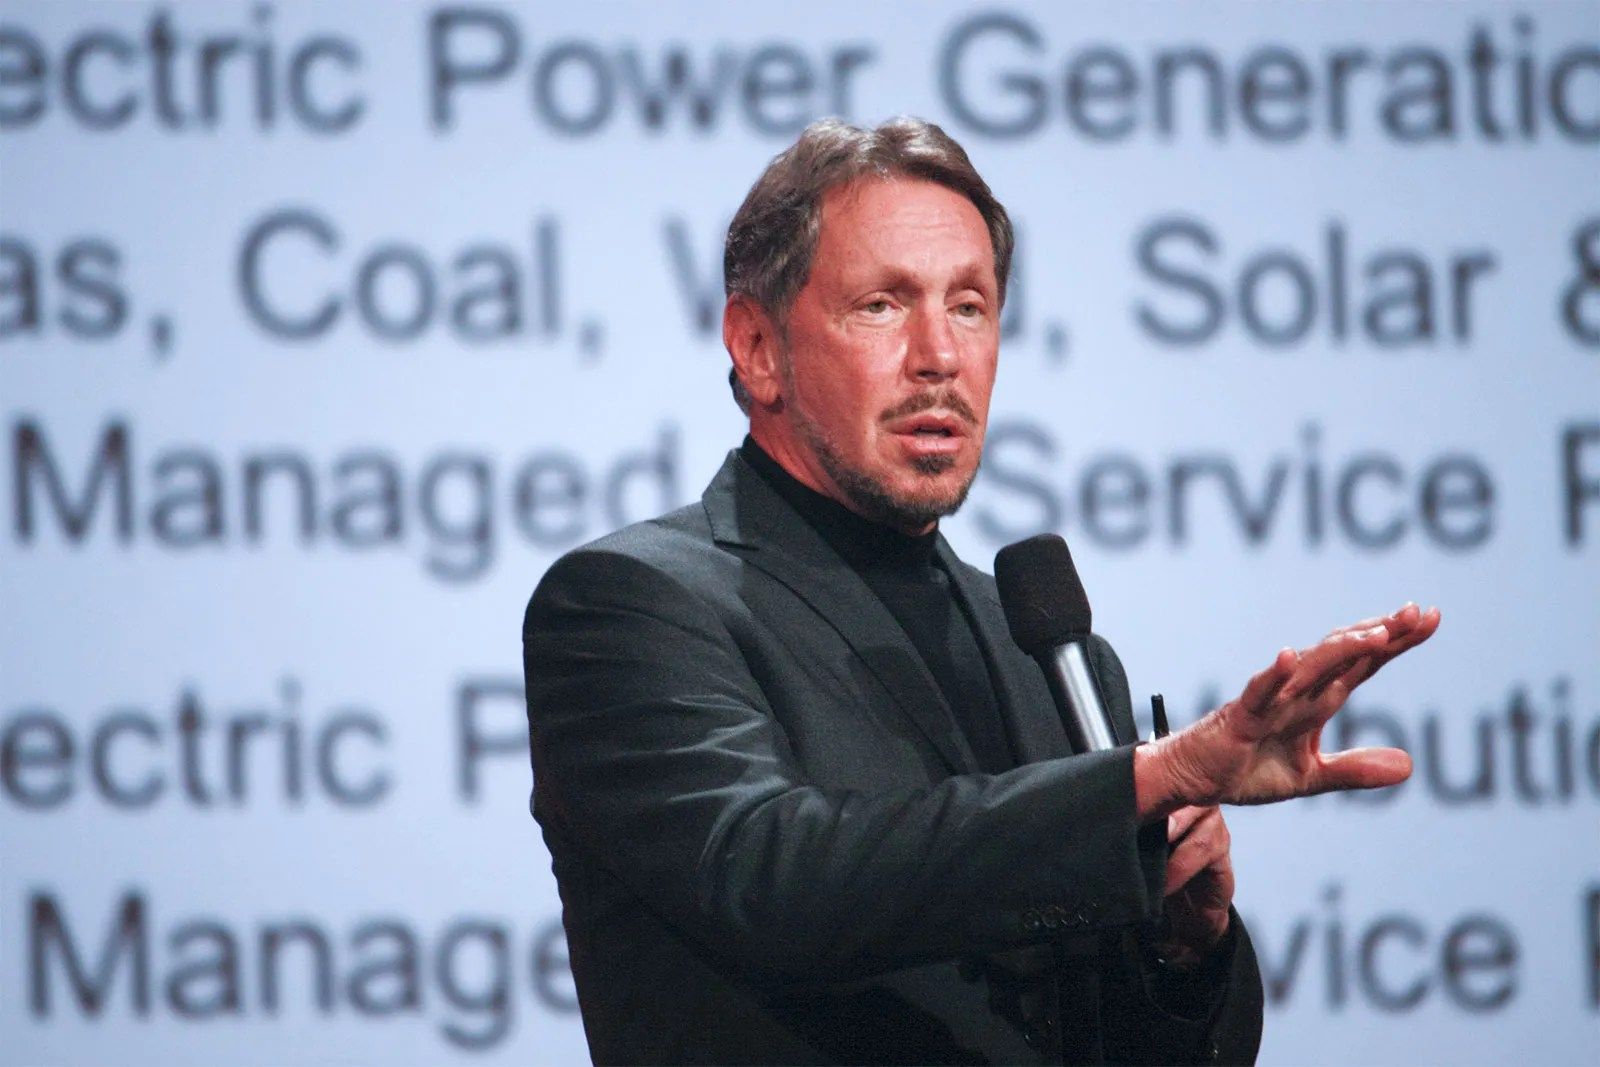 Larry Ellison | Biography, Oracle, & Facts | Britannica